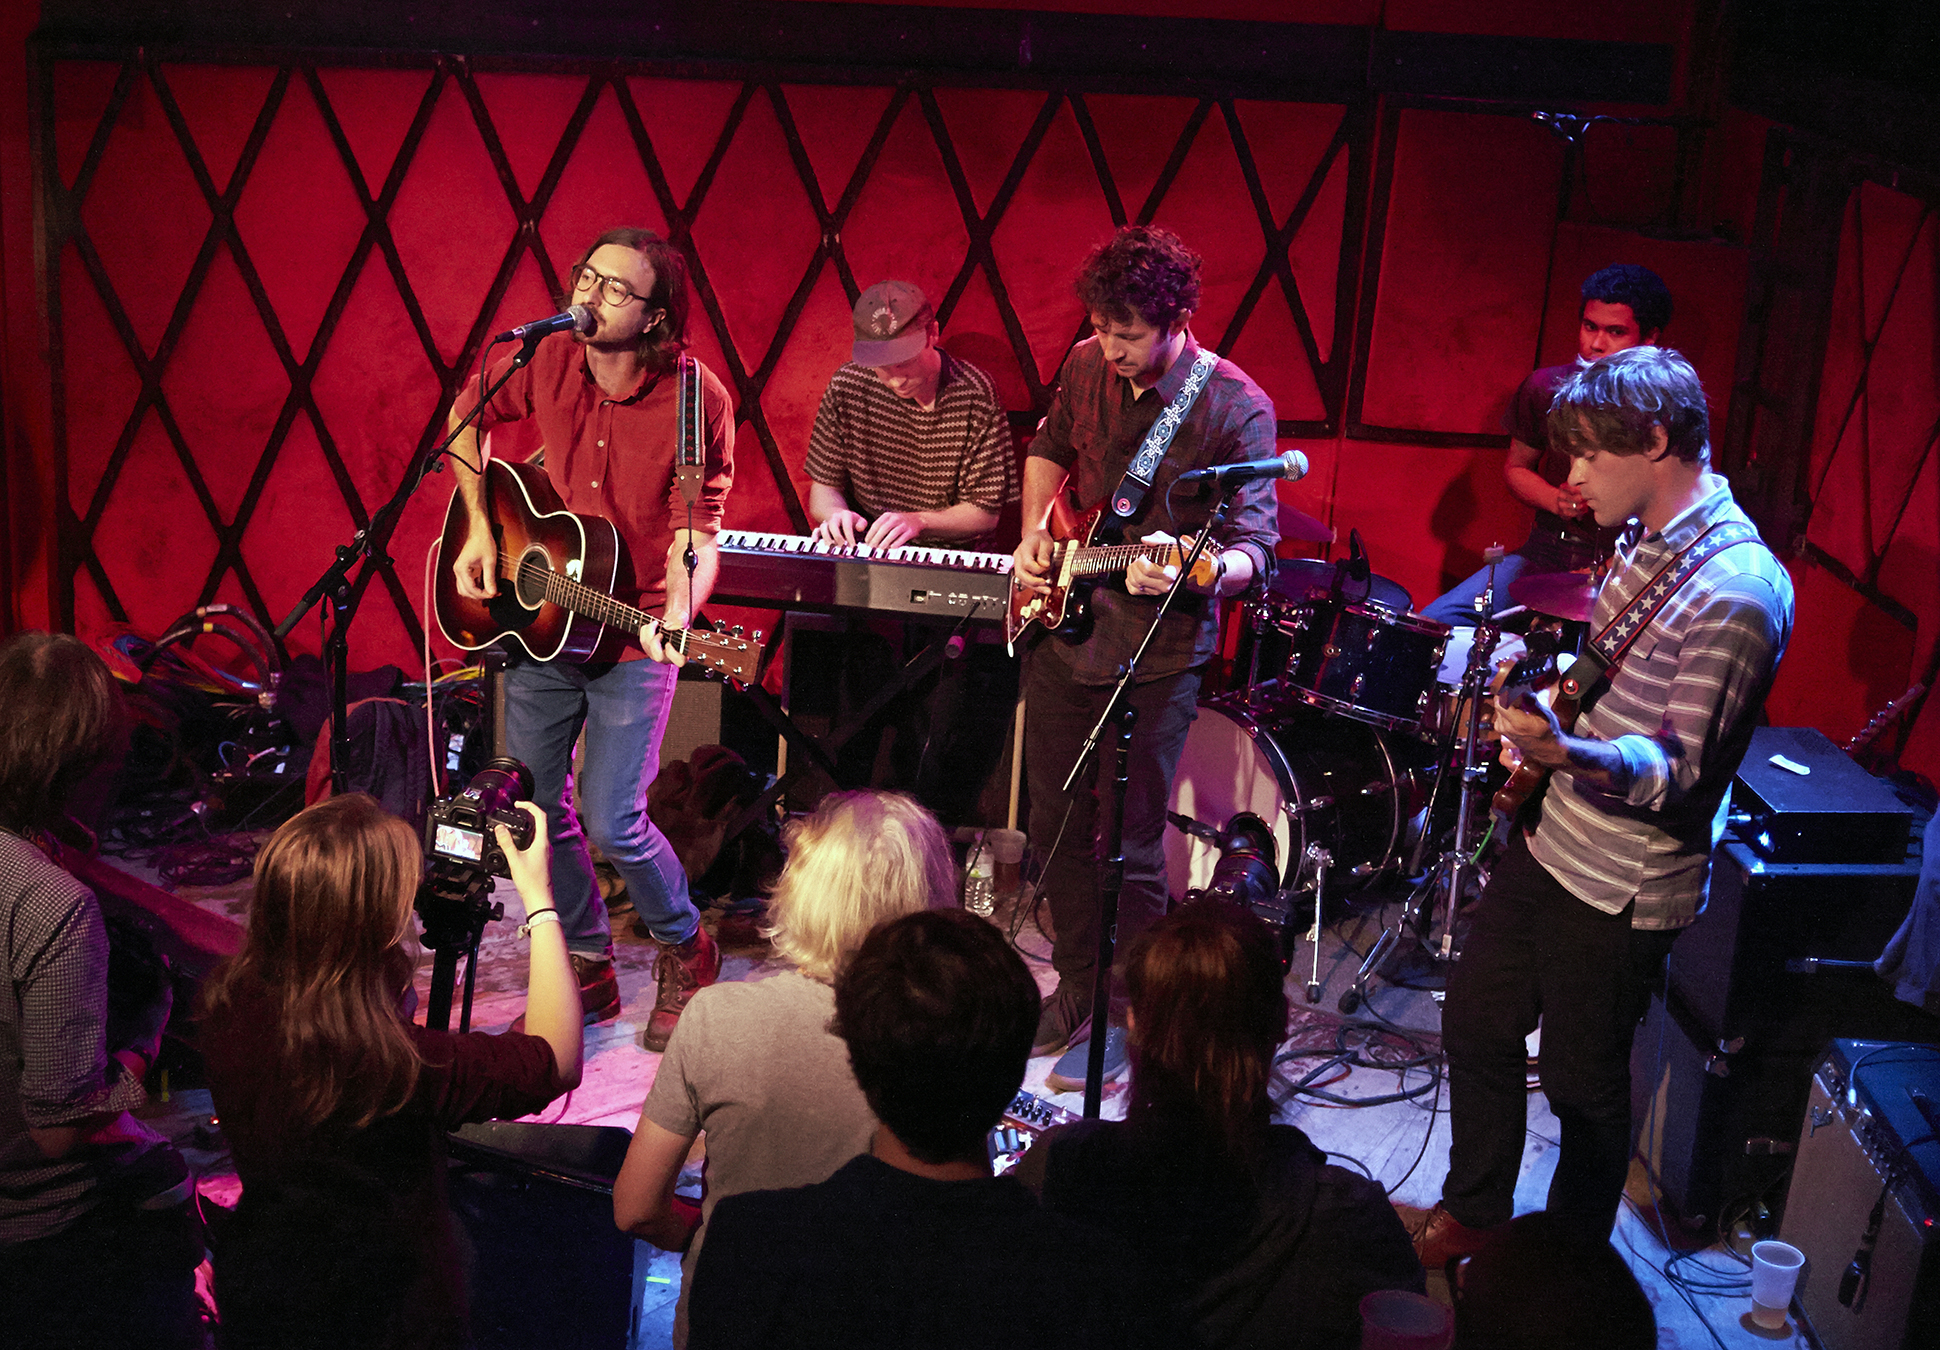 Martin Courtney at Rockwood Music Hall (photo by Gus Philippas/WFUV)